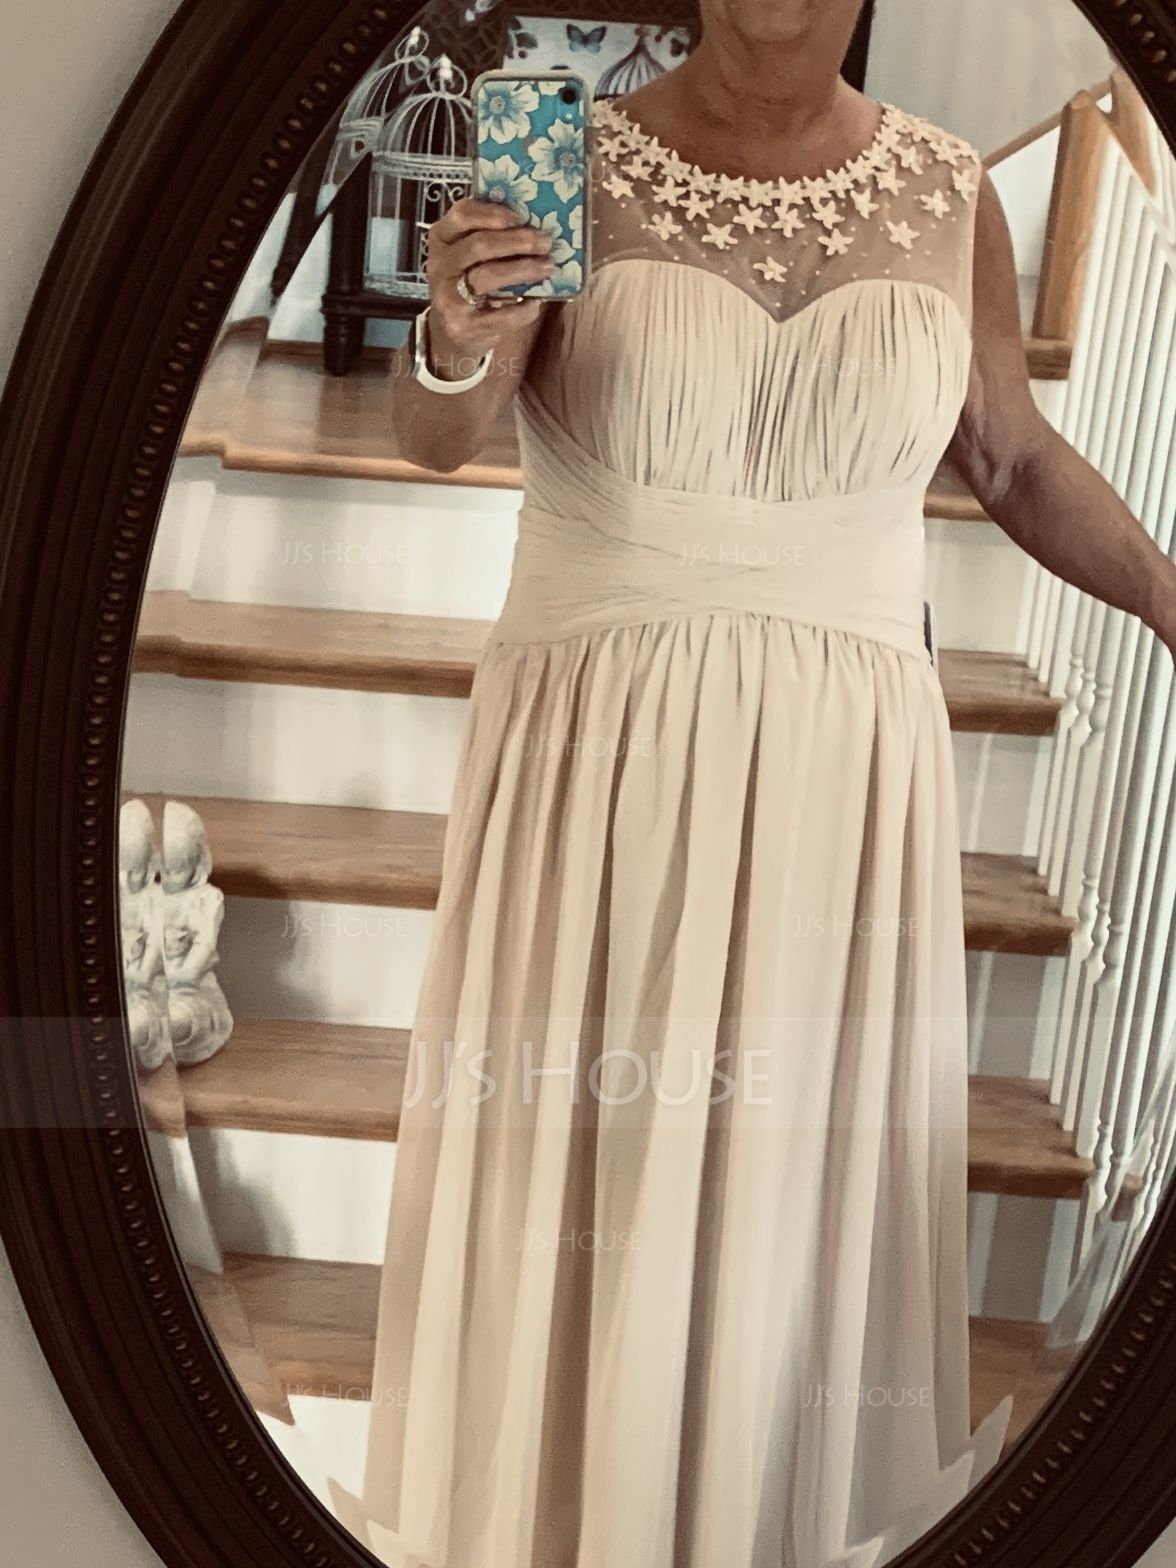 A-Line Scoop Neck Floor-Length Chiffon Prom Dresses With Ruffle Beading Flower(s) (018056791)